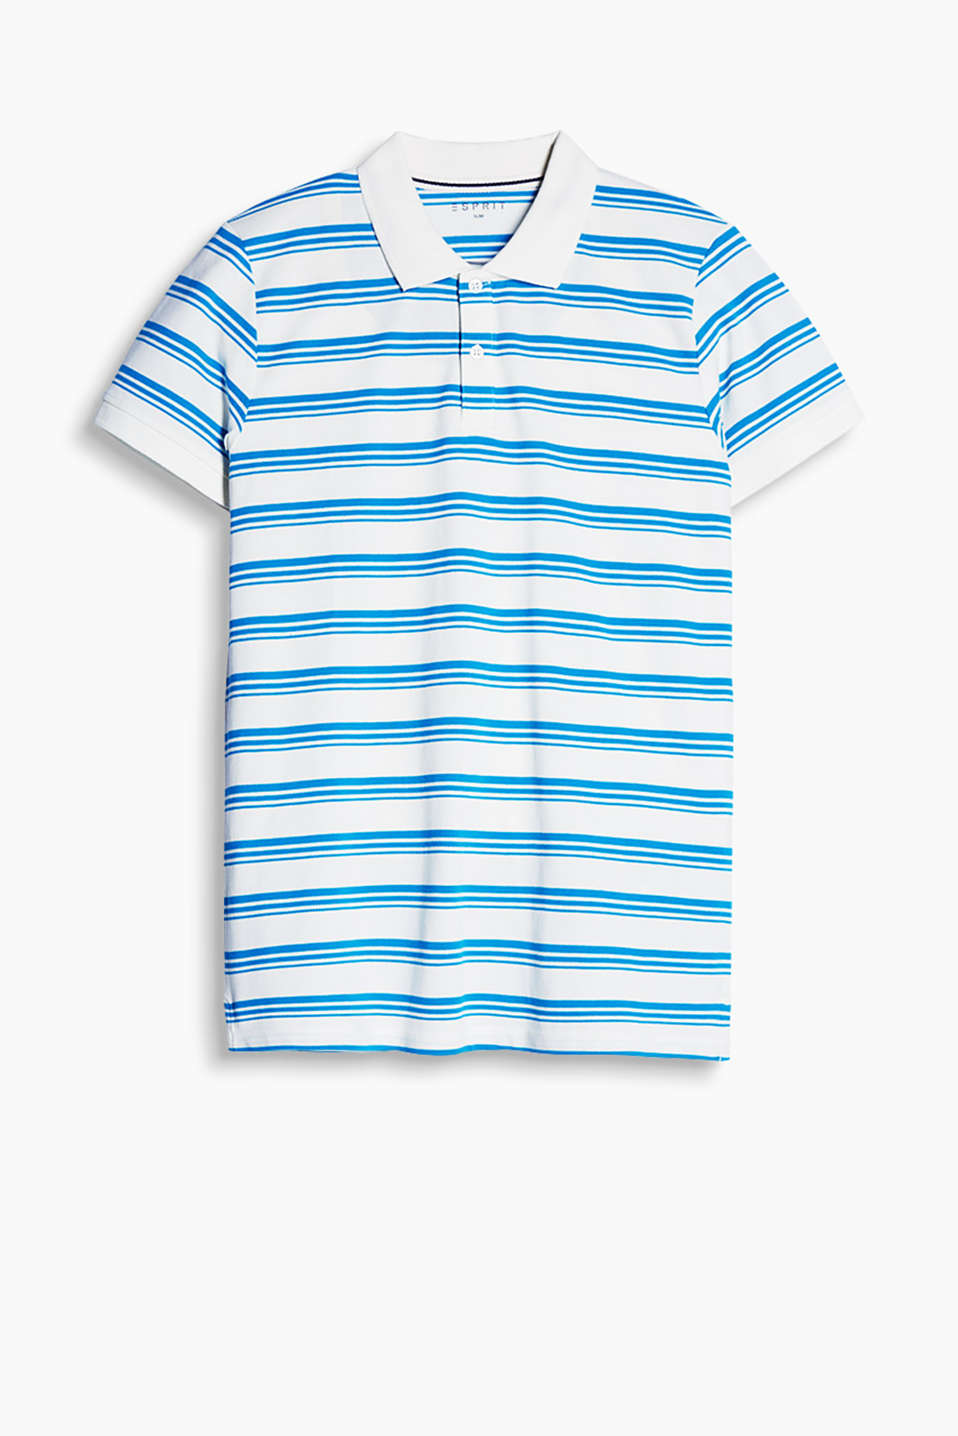 Polo shirt made of premium piqué fabric with a stunning stripe pattern, 100% cotton